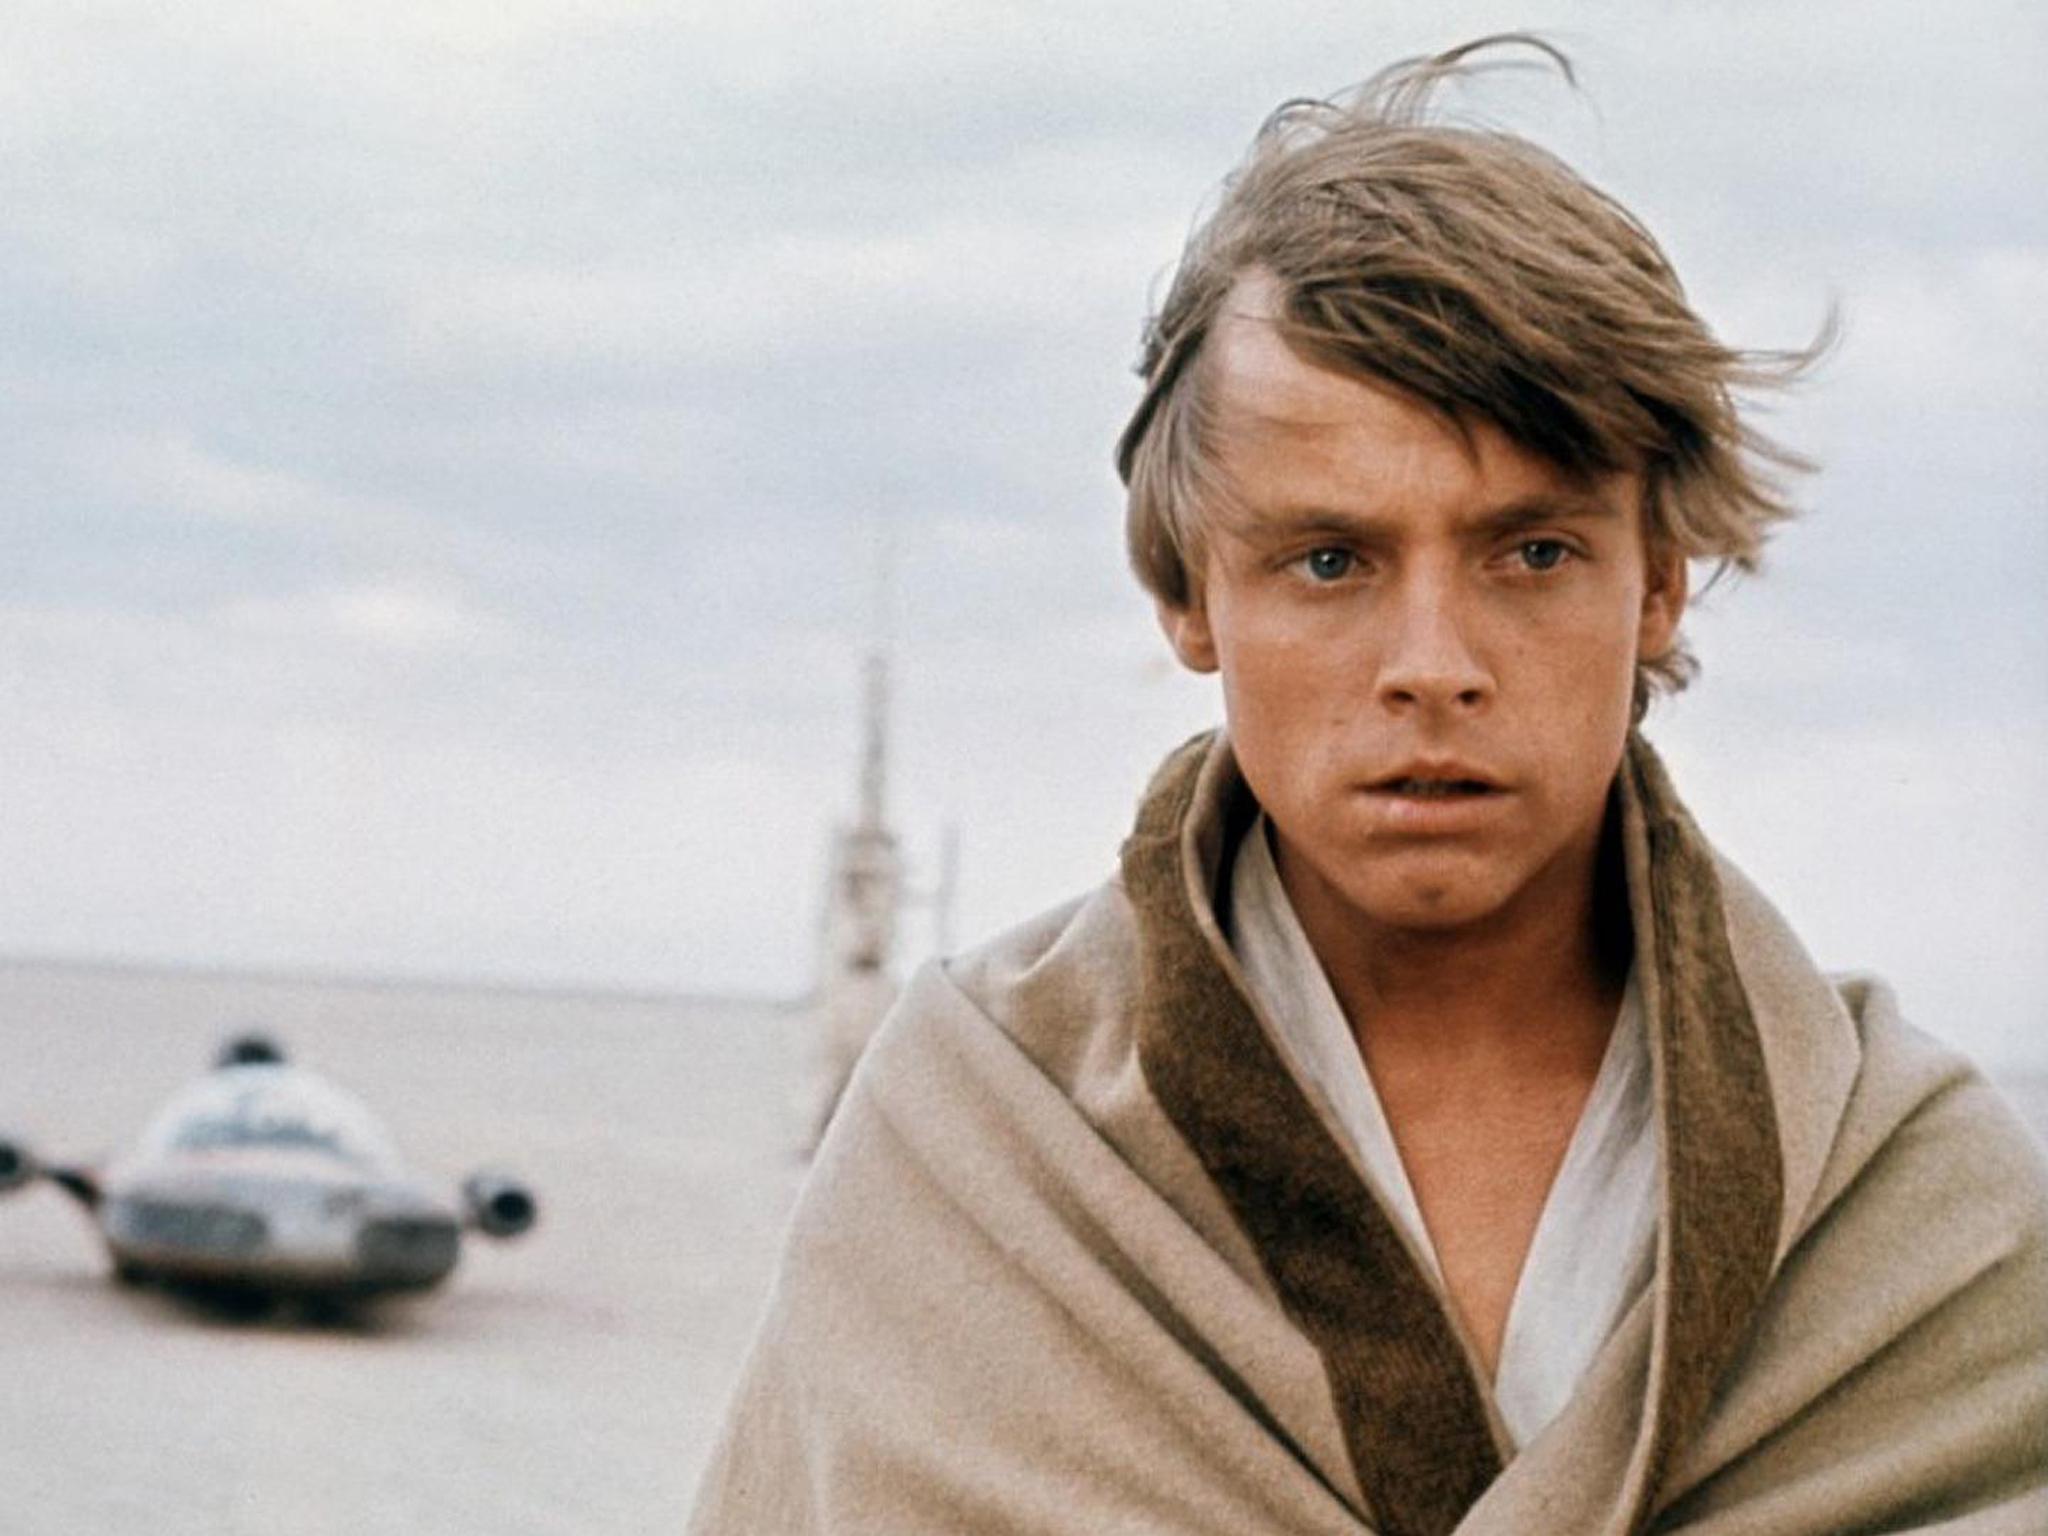 Luke Skywalker – The 50 best Star Wars characters